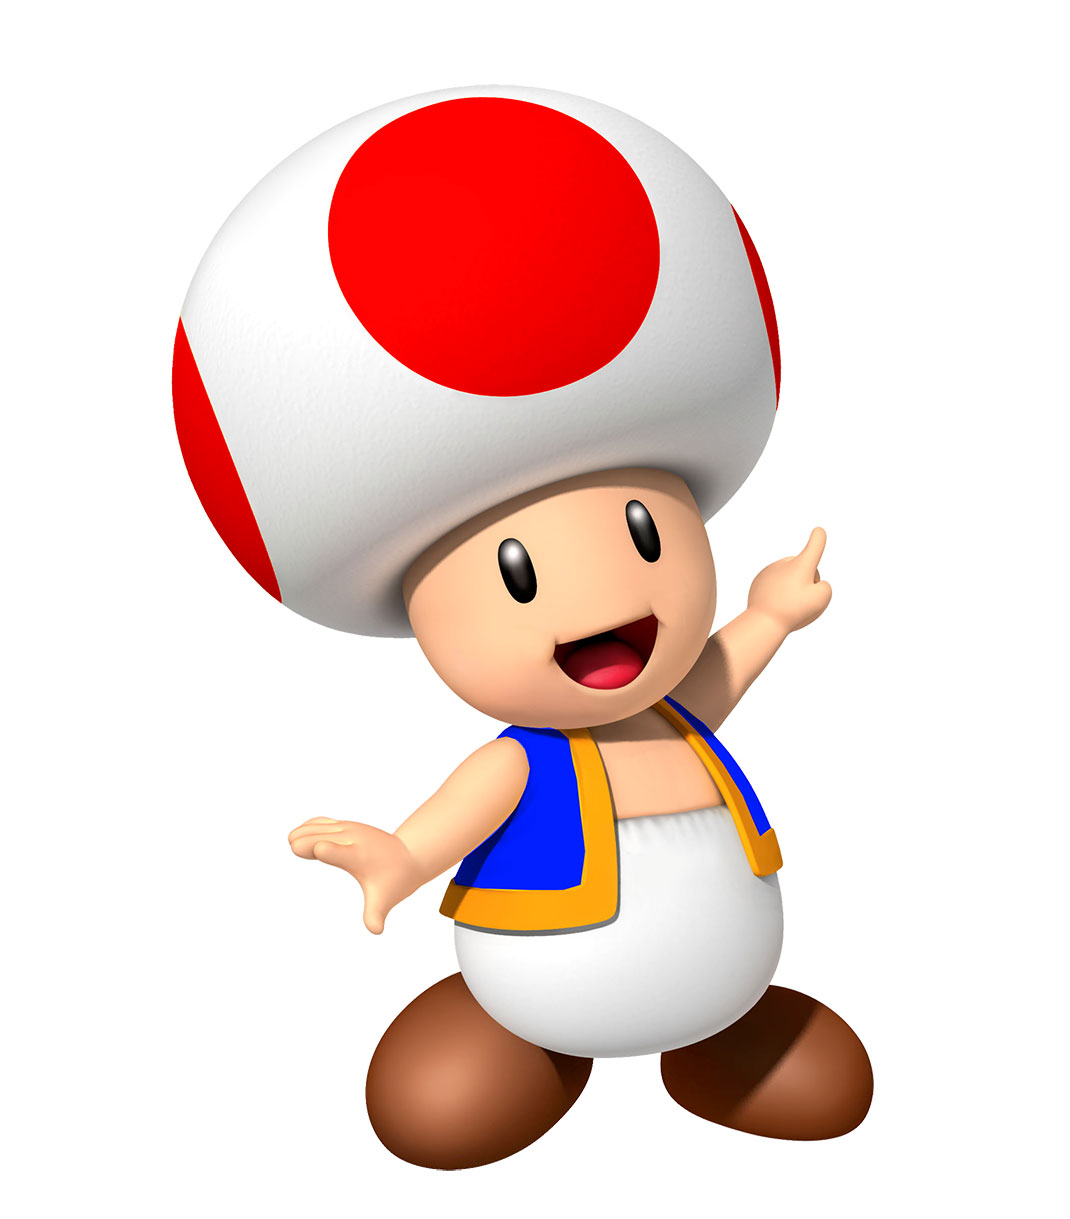 toad-personnage-mario-salut